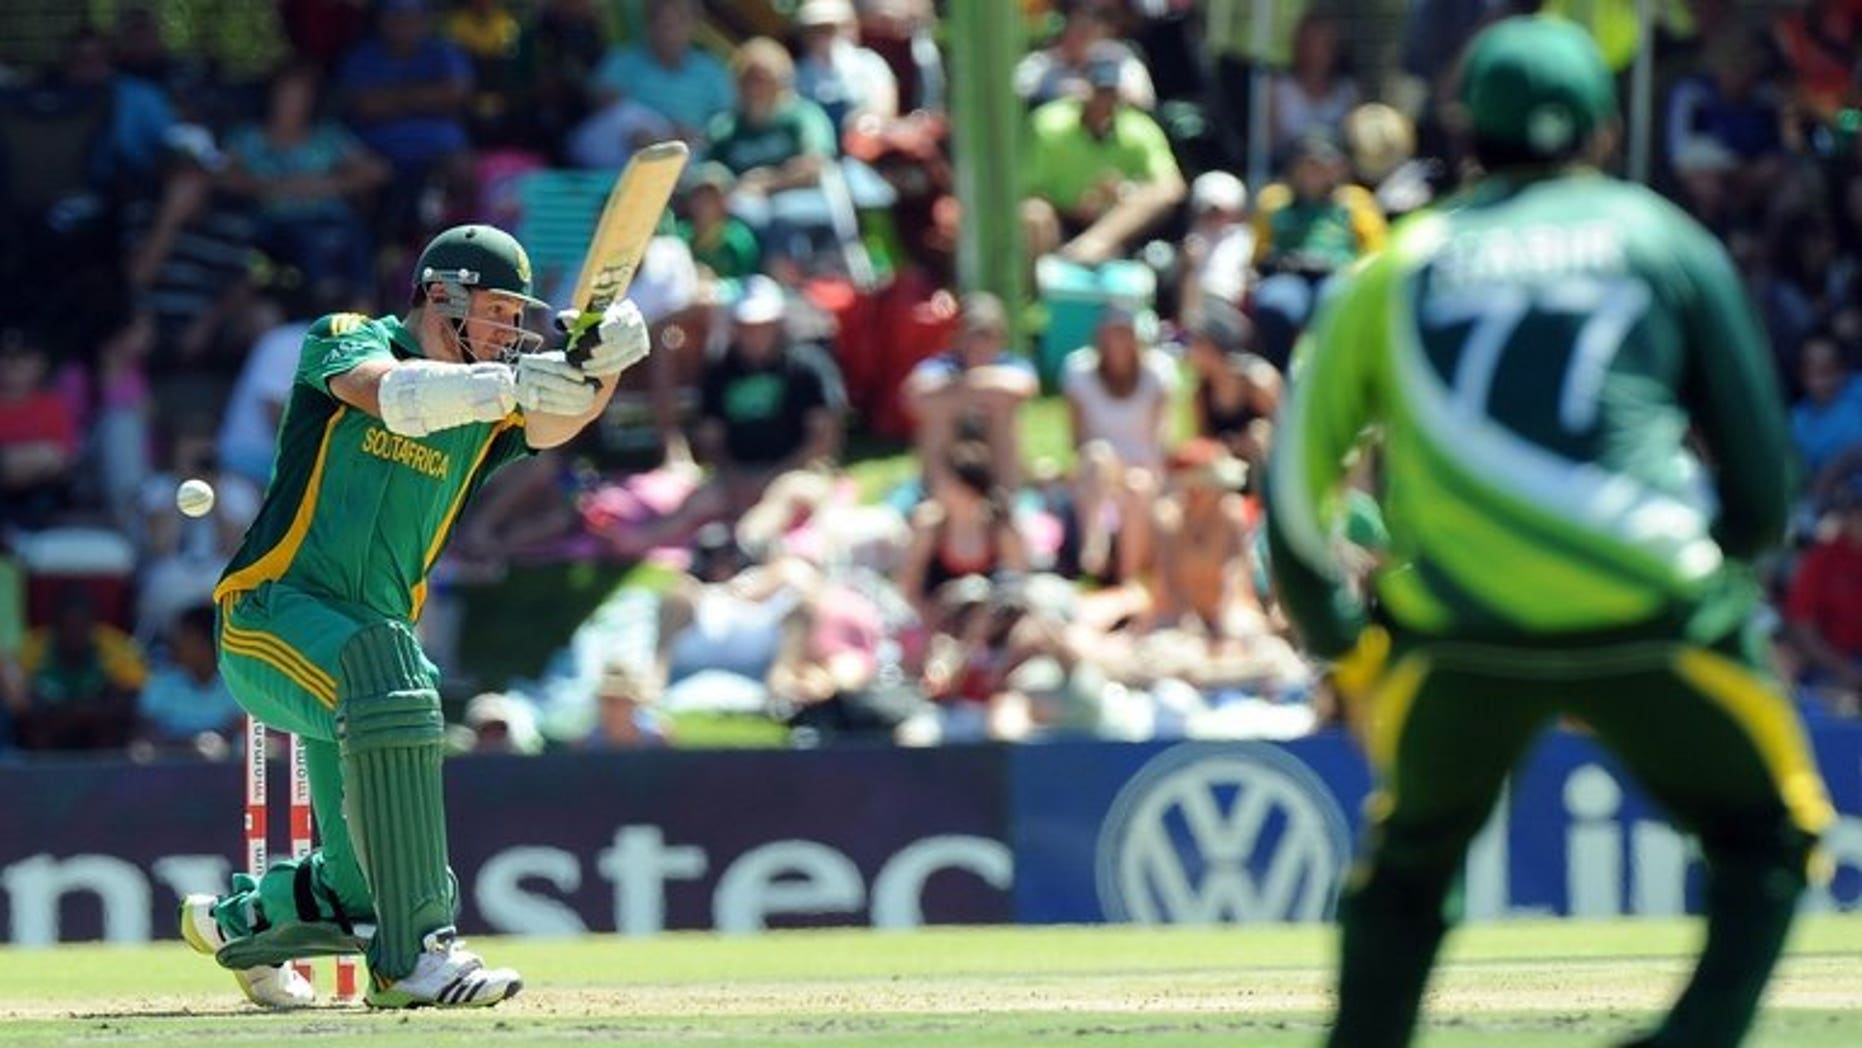 Graeme Smith plays a shot in a one day game against Pakistan in Bloemfontein on March 10. The South Africa captain was named Tuesday for a two-Test October series against Pakistan in the United Arab Emirates after recovering from foot surgery.